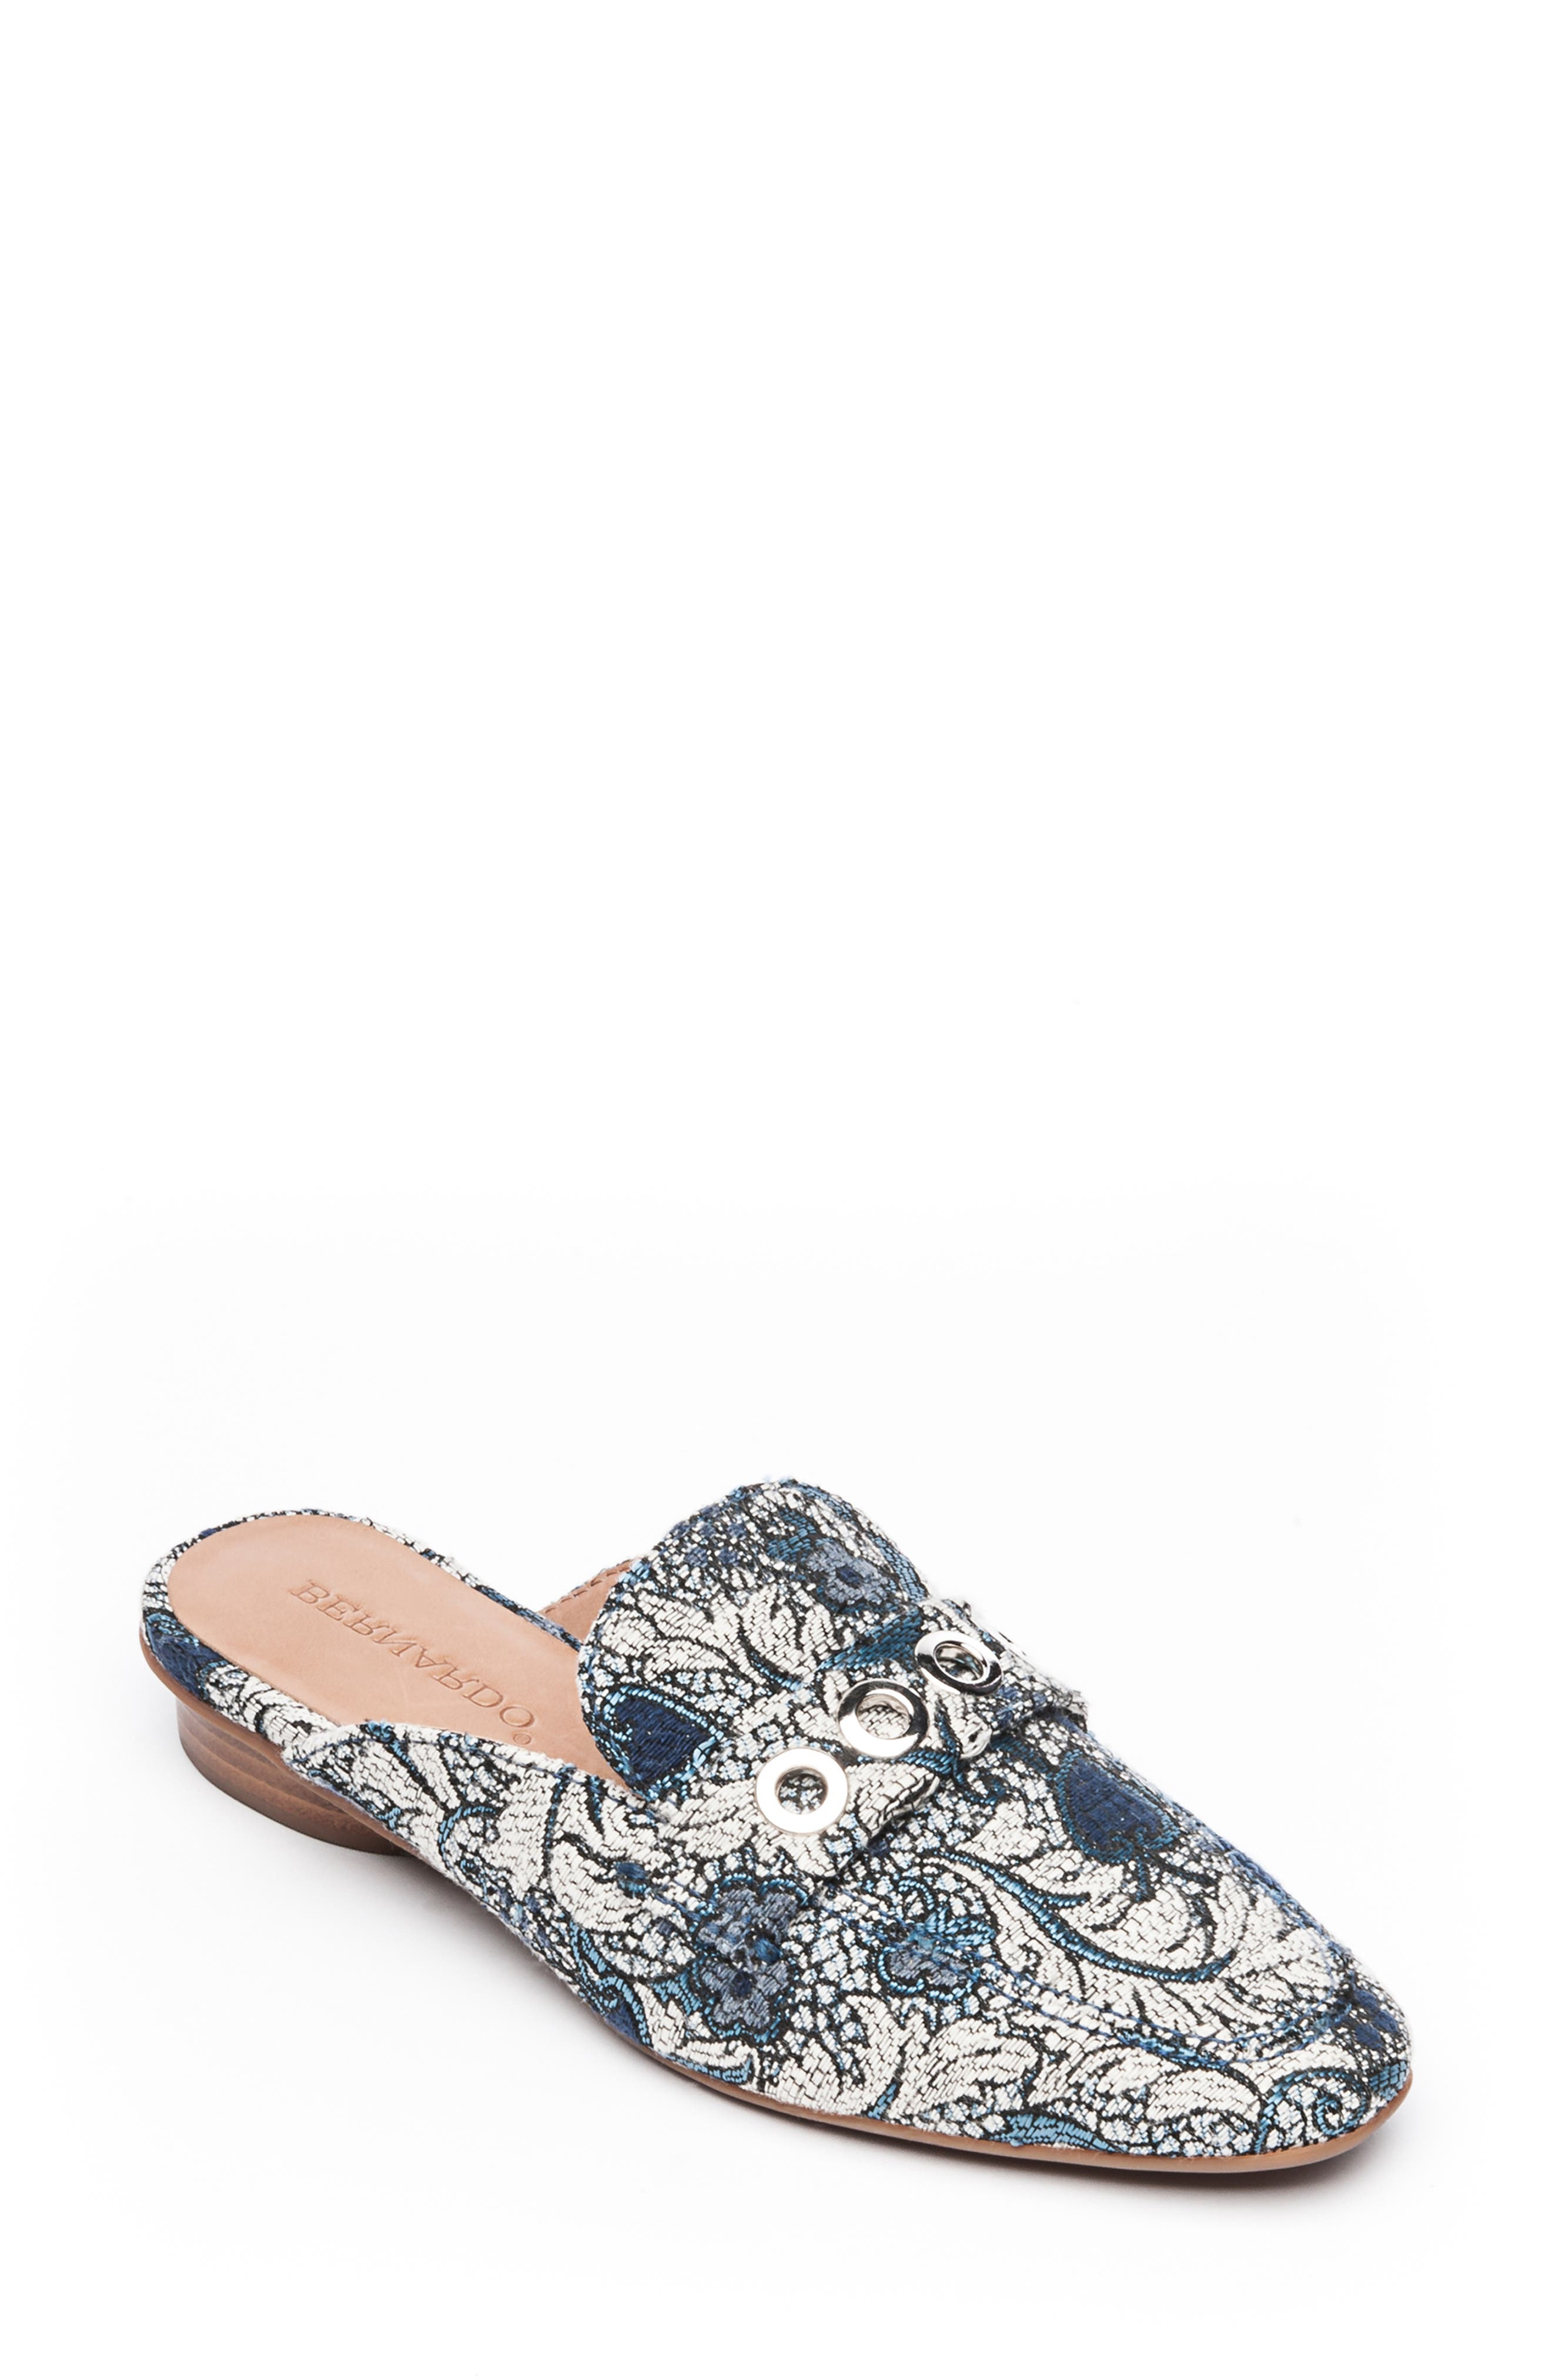 Bernardo Jen Mule,                             Main thumbnail 1, color,                             BLUE JACQUARD LEATHER